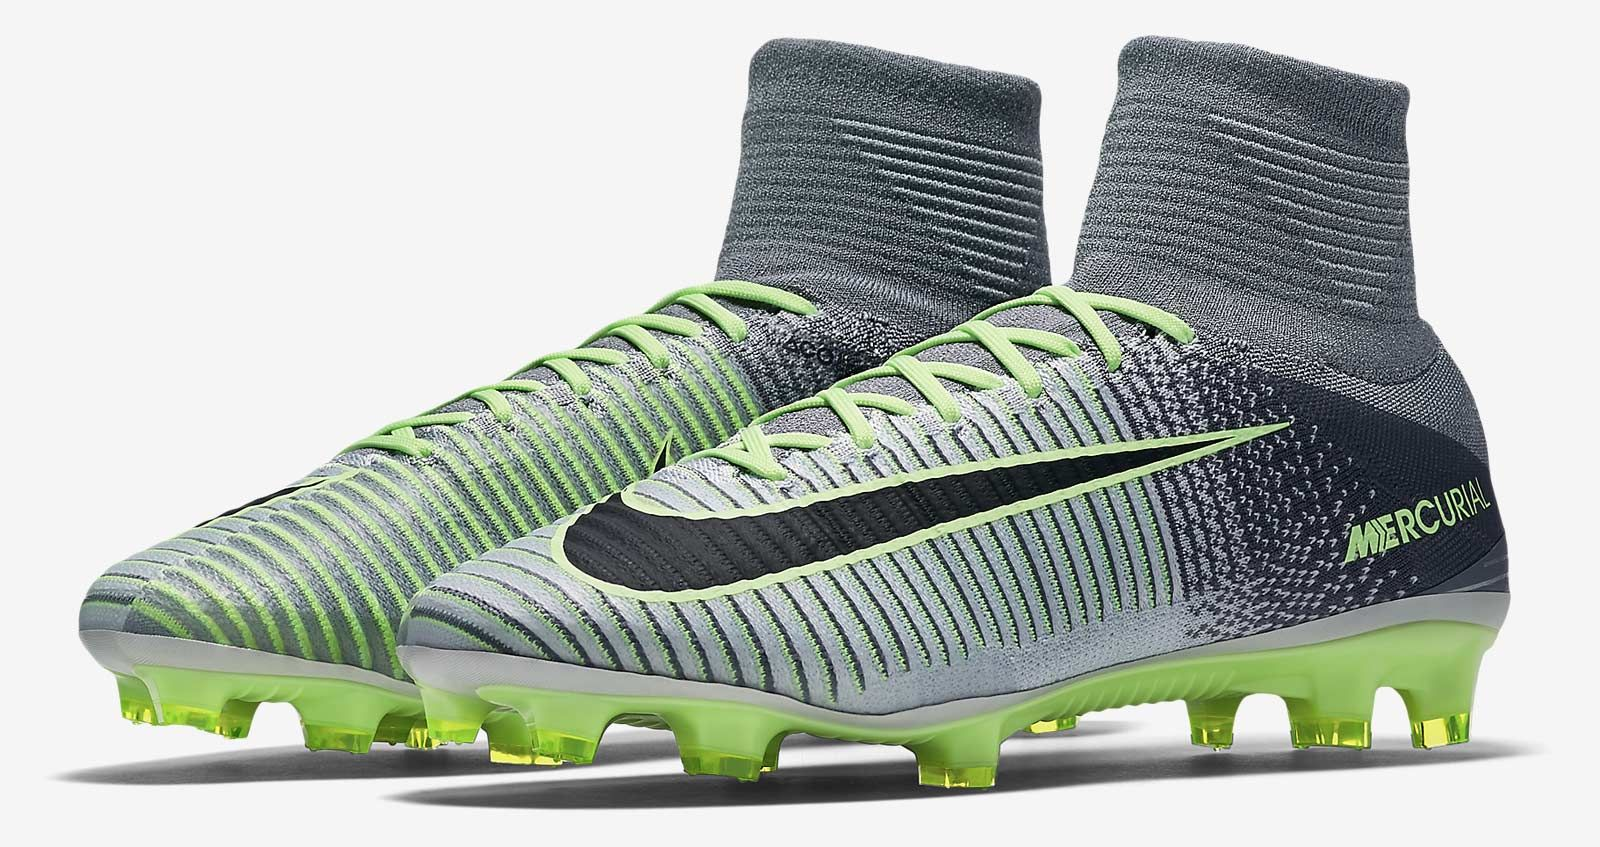 dae5dd7b1ac6 Pure Platinum Nike Mercurial Superfly V 2016-17 Elite Pack Boots ...